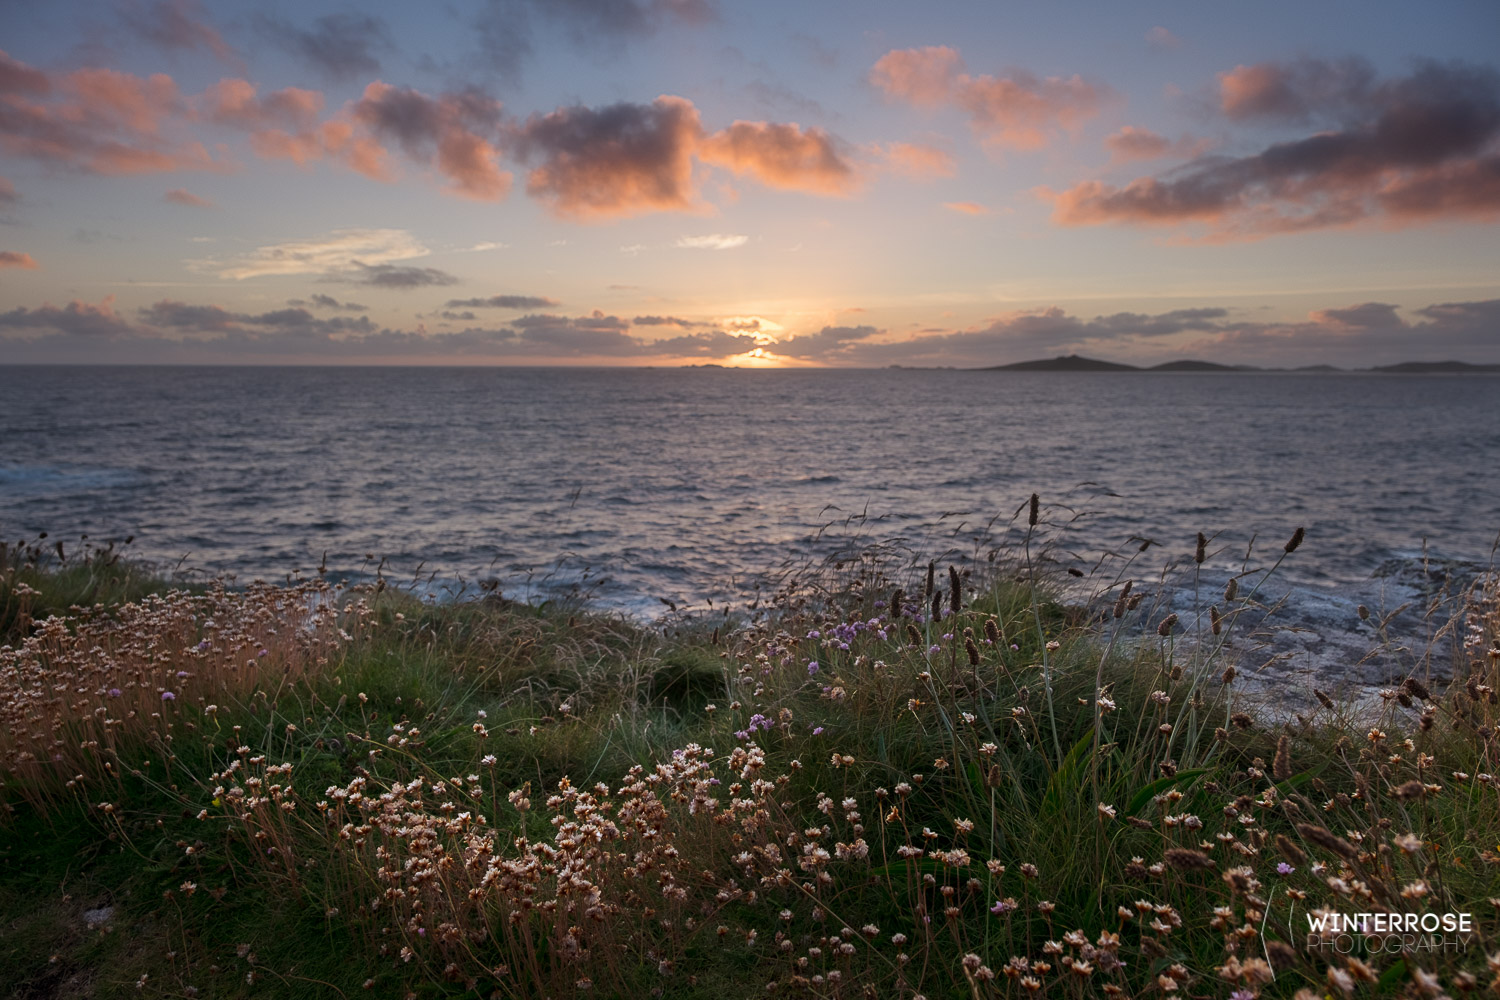 My first Isles of Scilly Sunset. You don't get these in Bedfordshire, and the strength of the light was incredible.